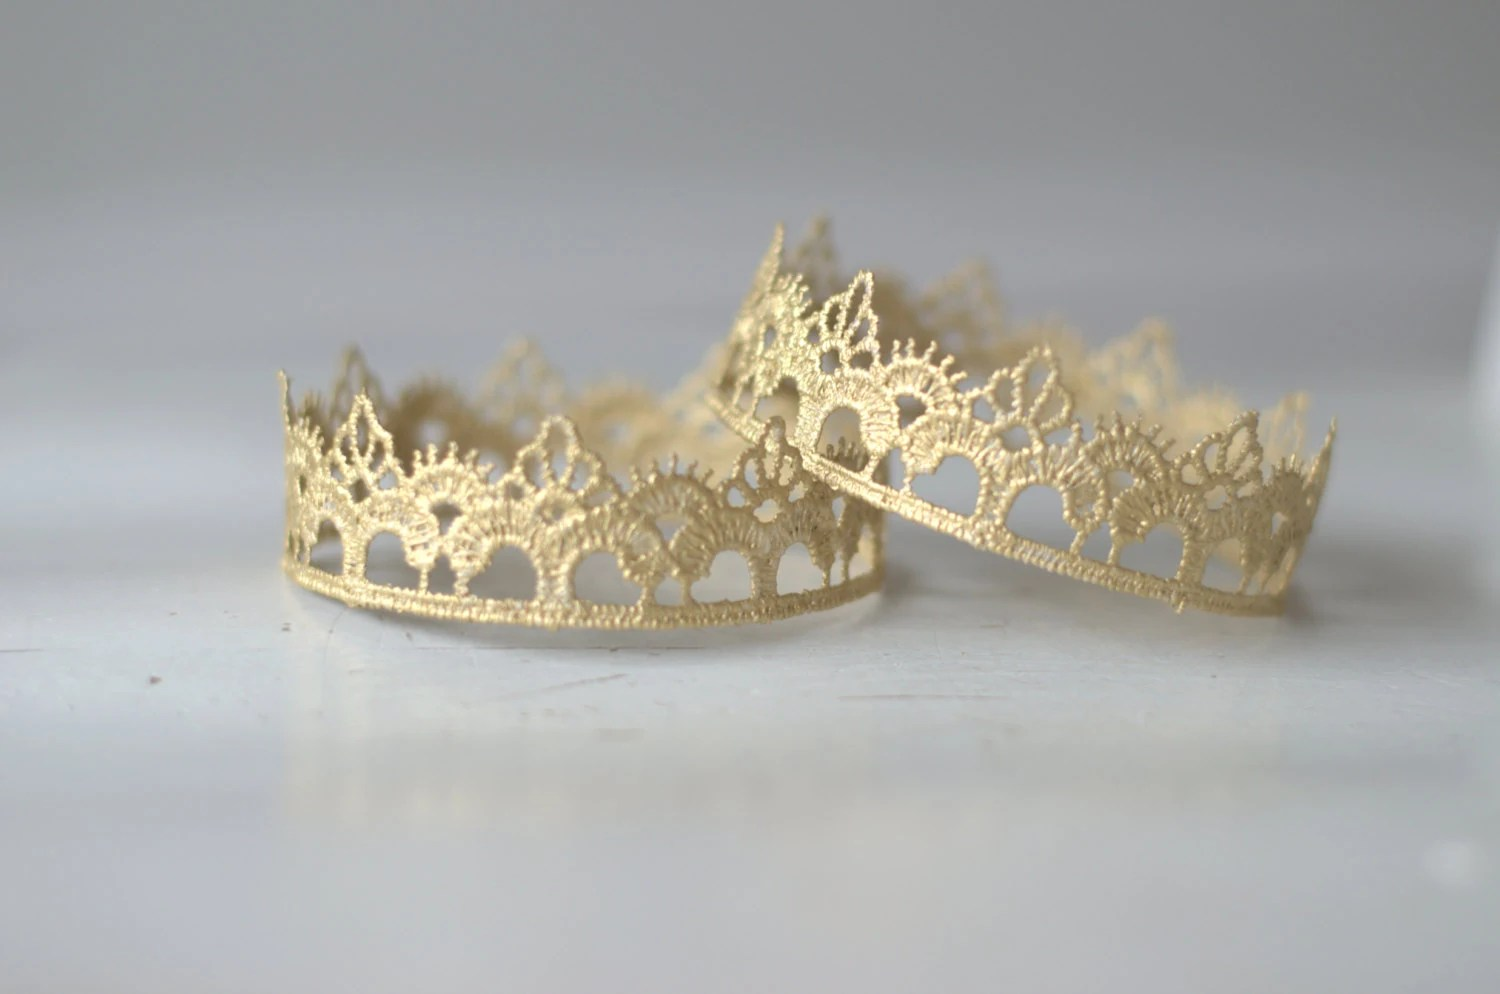 Ready To Ship Newborn Gold Lace Crown.  Baby Gold Crown.  Newborn Gold Lace Crown. Newborn Photography Prop. UK SELLER